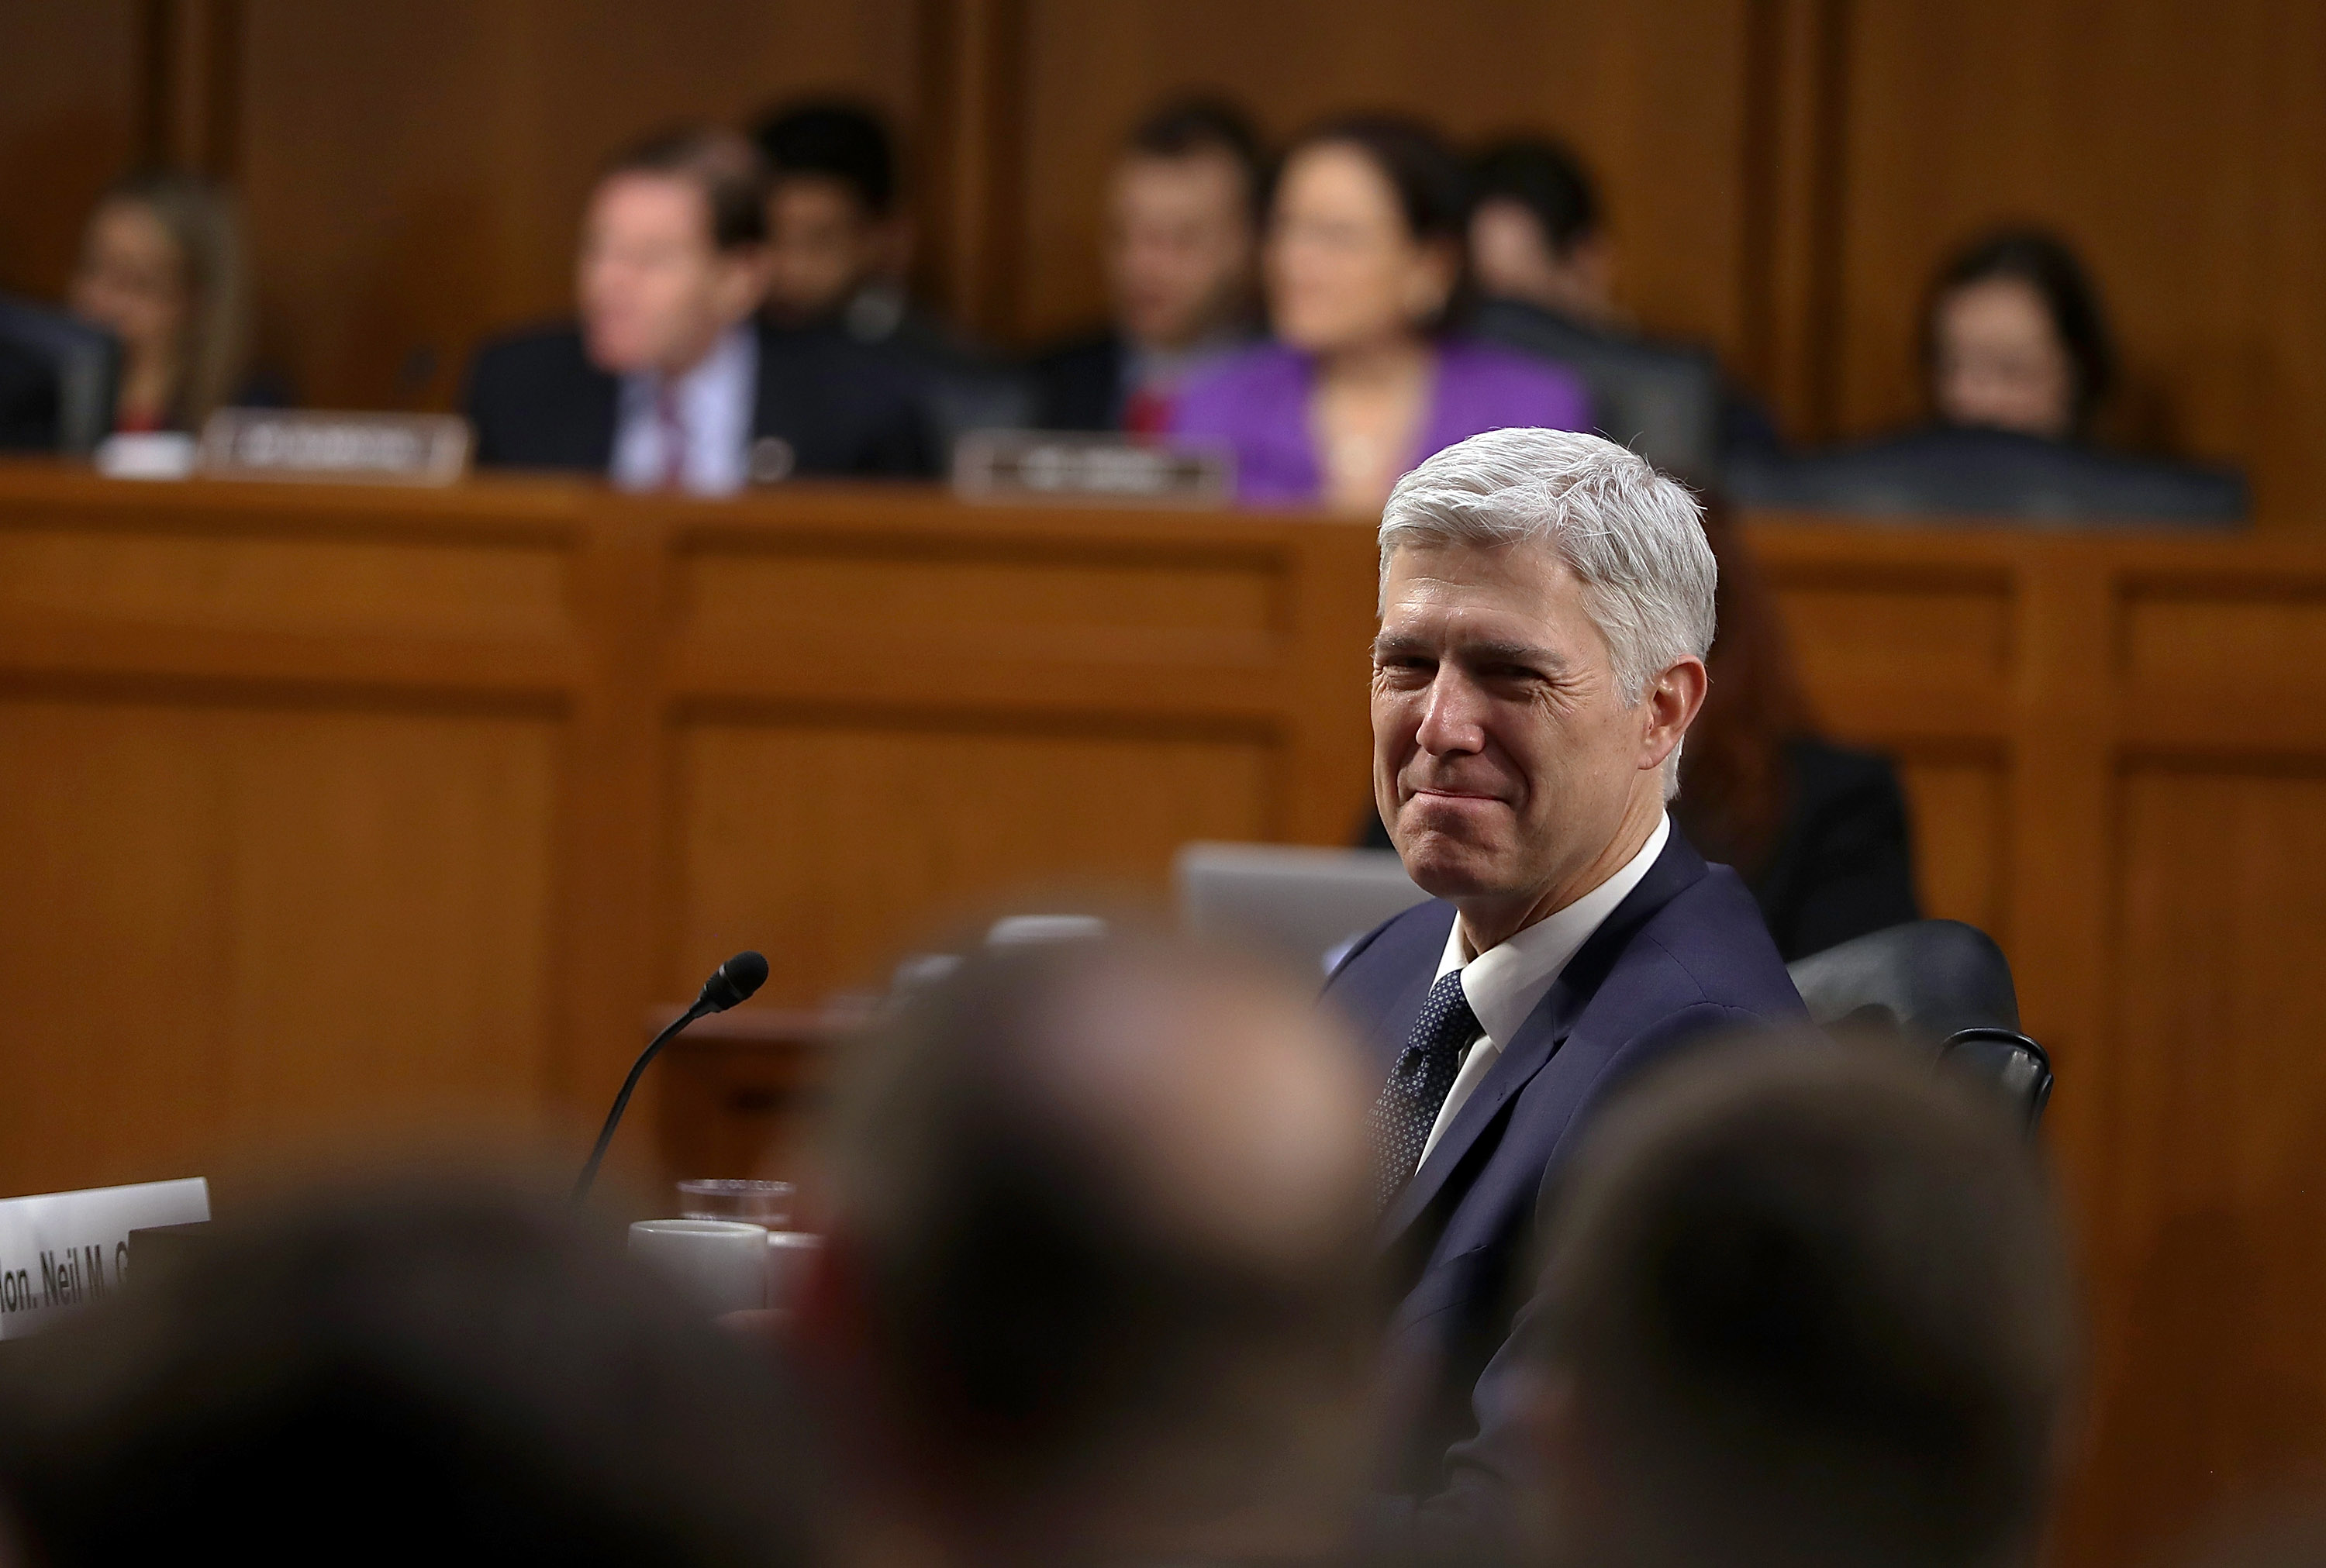 Judge Neil Gorsuch looks on during the third day of his Supreme Court confirmation hearing before the Senate Judiciary Committee in the Hart Senate Office Building on Capitol Hill, March 22, 2017 in Washington. Justin Sullivan—Getty Images